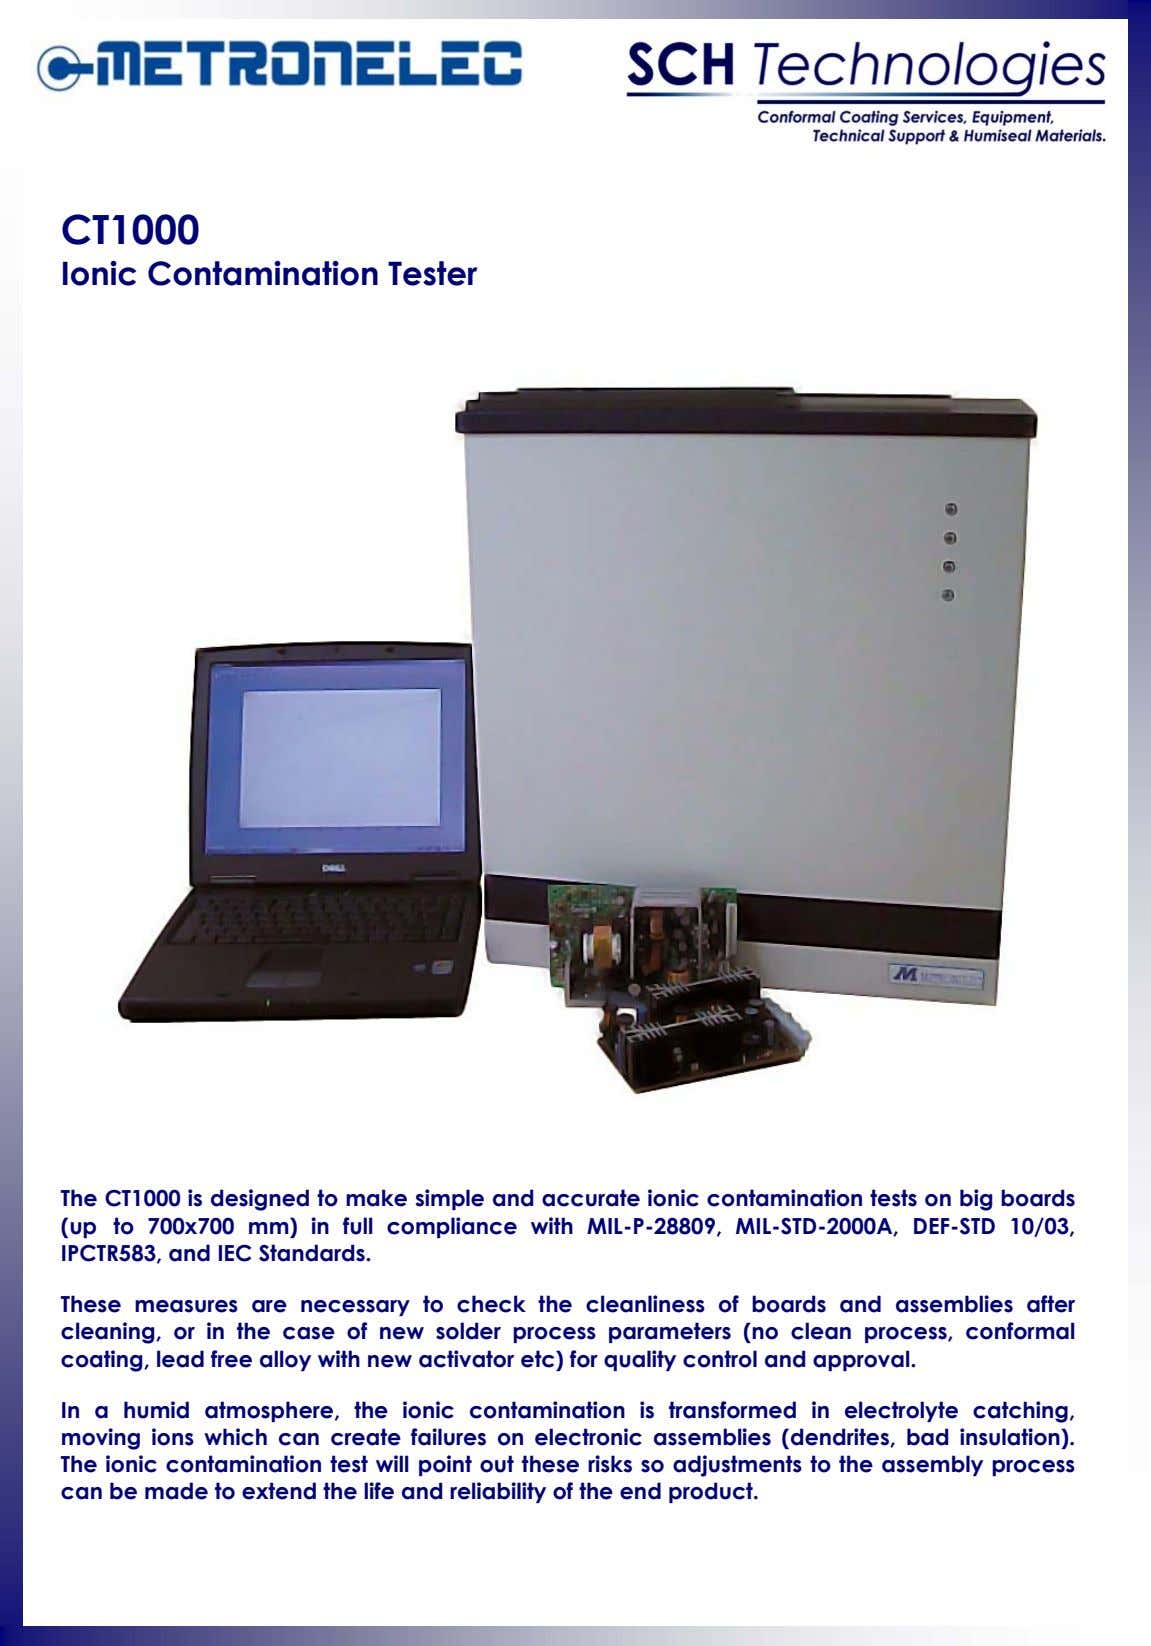 CT1000 Ionic Contamination Tester The CT1000 is designed to make simple and accurate ionic contamination